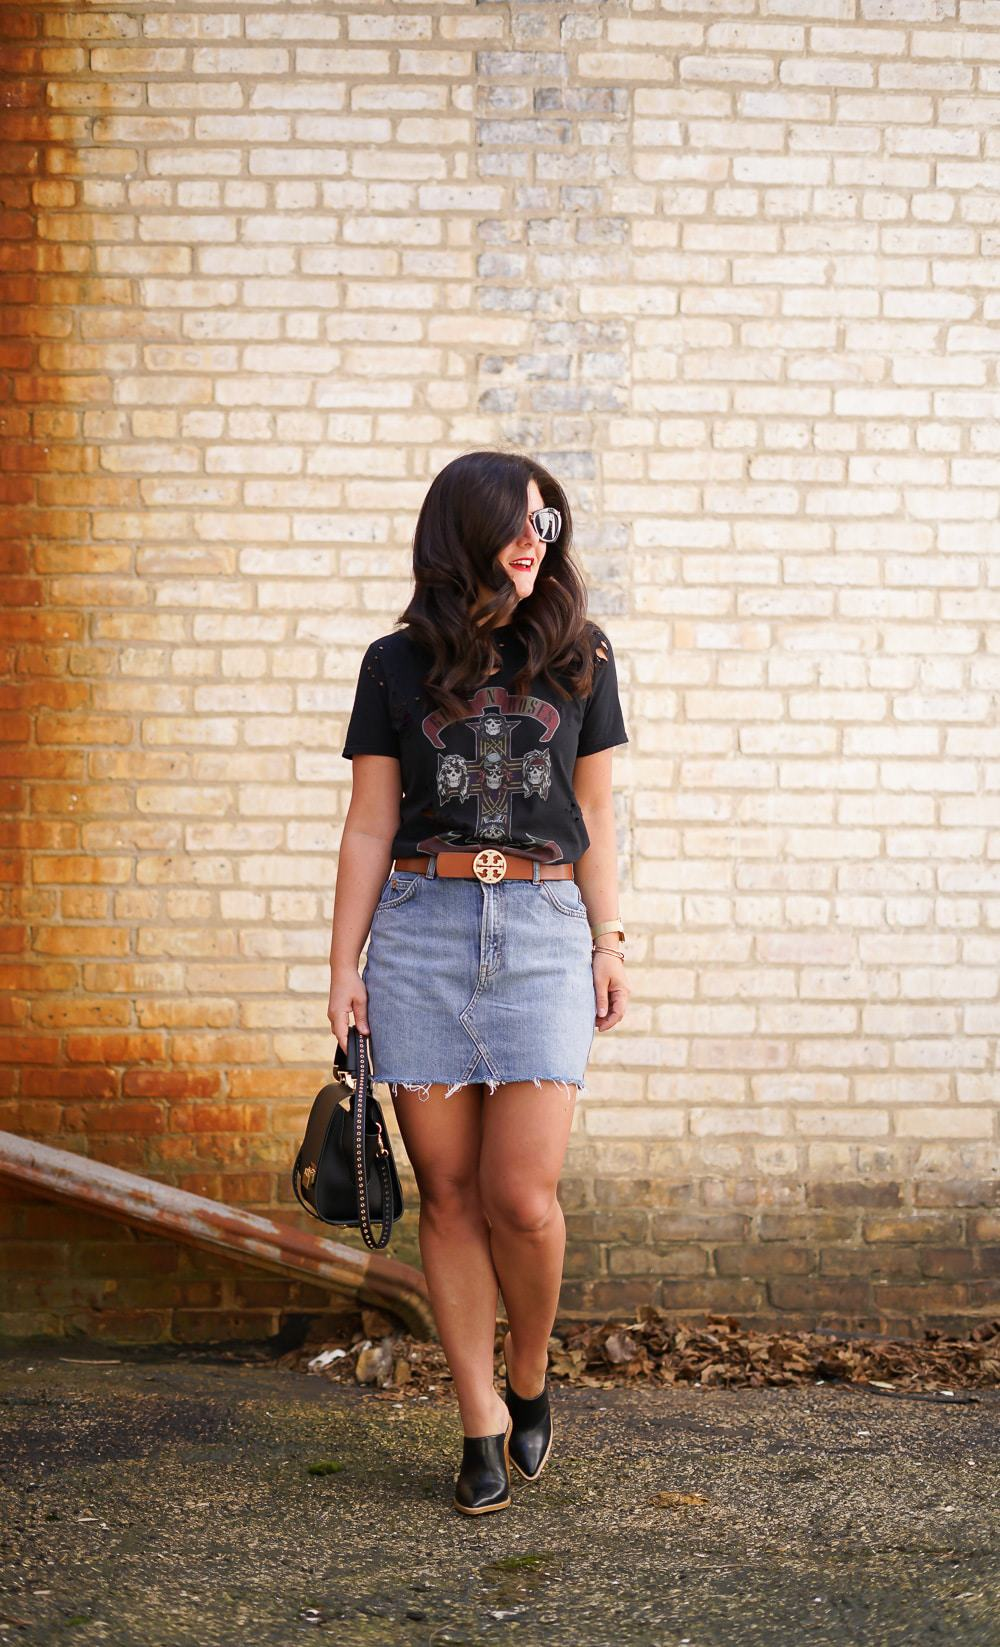 Festival Style, A Lily Love Affair, Chicago Blogger, Topshop Guns & Roses Distressed Tee, Nordstrom Denim Mini Skirt, Tory Burch Belt, Tibi Mules c/o Saks Off 5th, Zac Posen Cross Body Bag, Saks Off 5th, Miu Miu Sunglasses, Cluse Watch